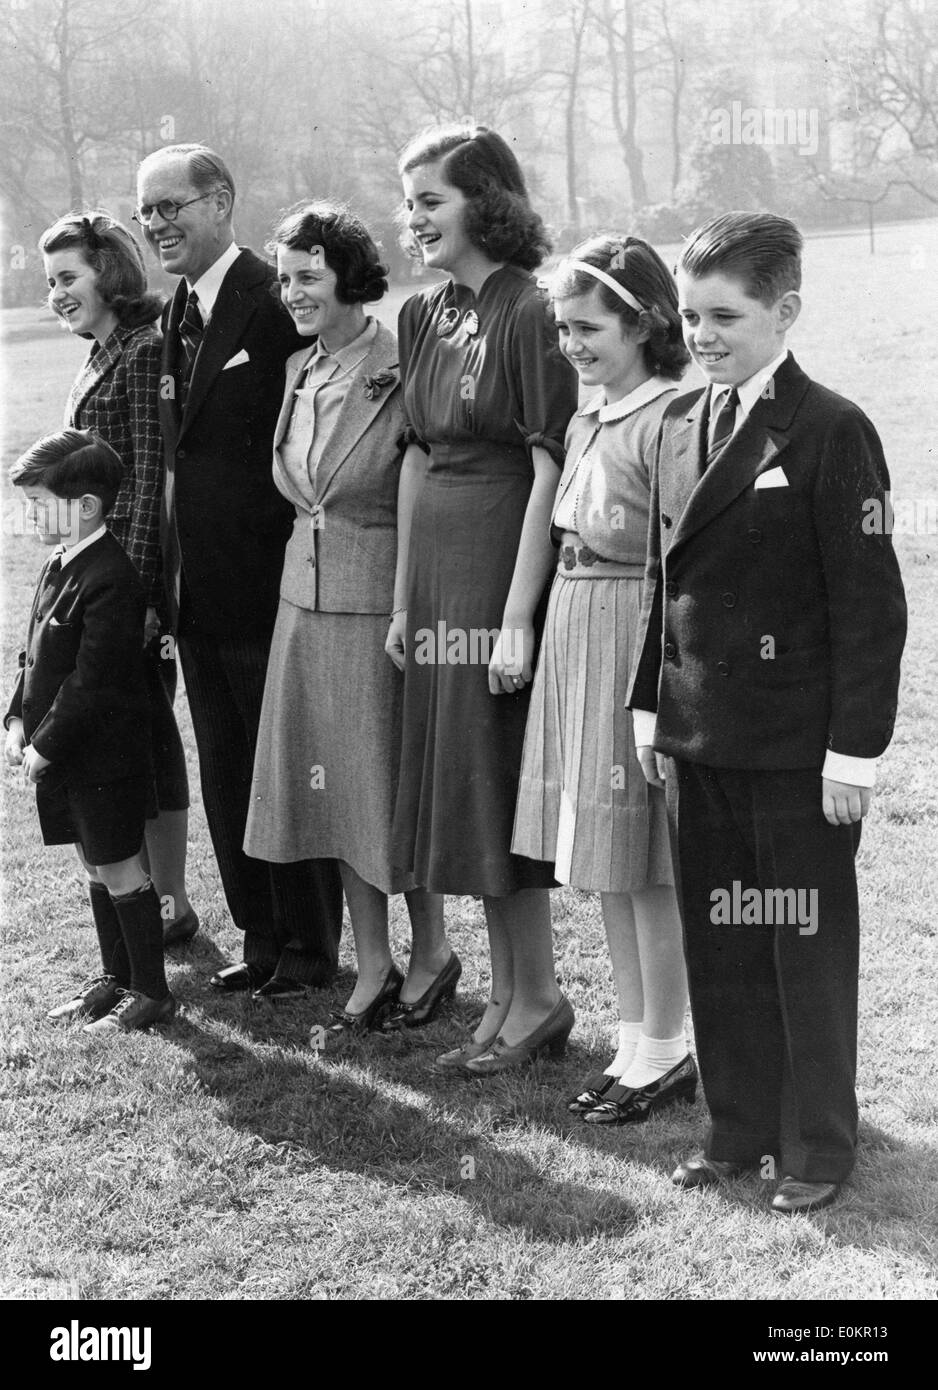 March 16, 1938 - London, England, United Kingdom - From left to right are KATHLEEN KENNEDY, JOSEPH KENNEDY SR (1888-1969), ROSE - Stock Image